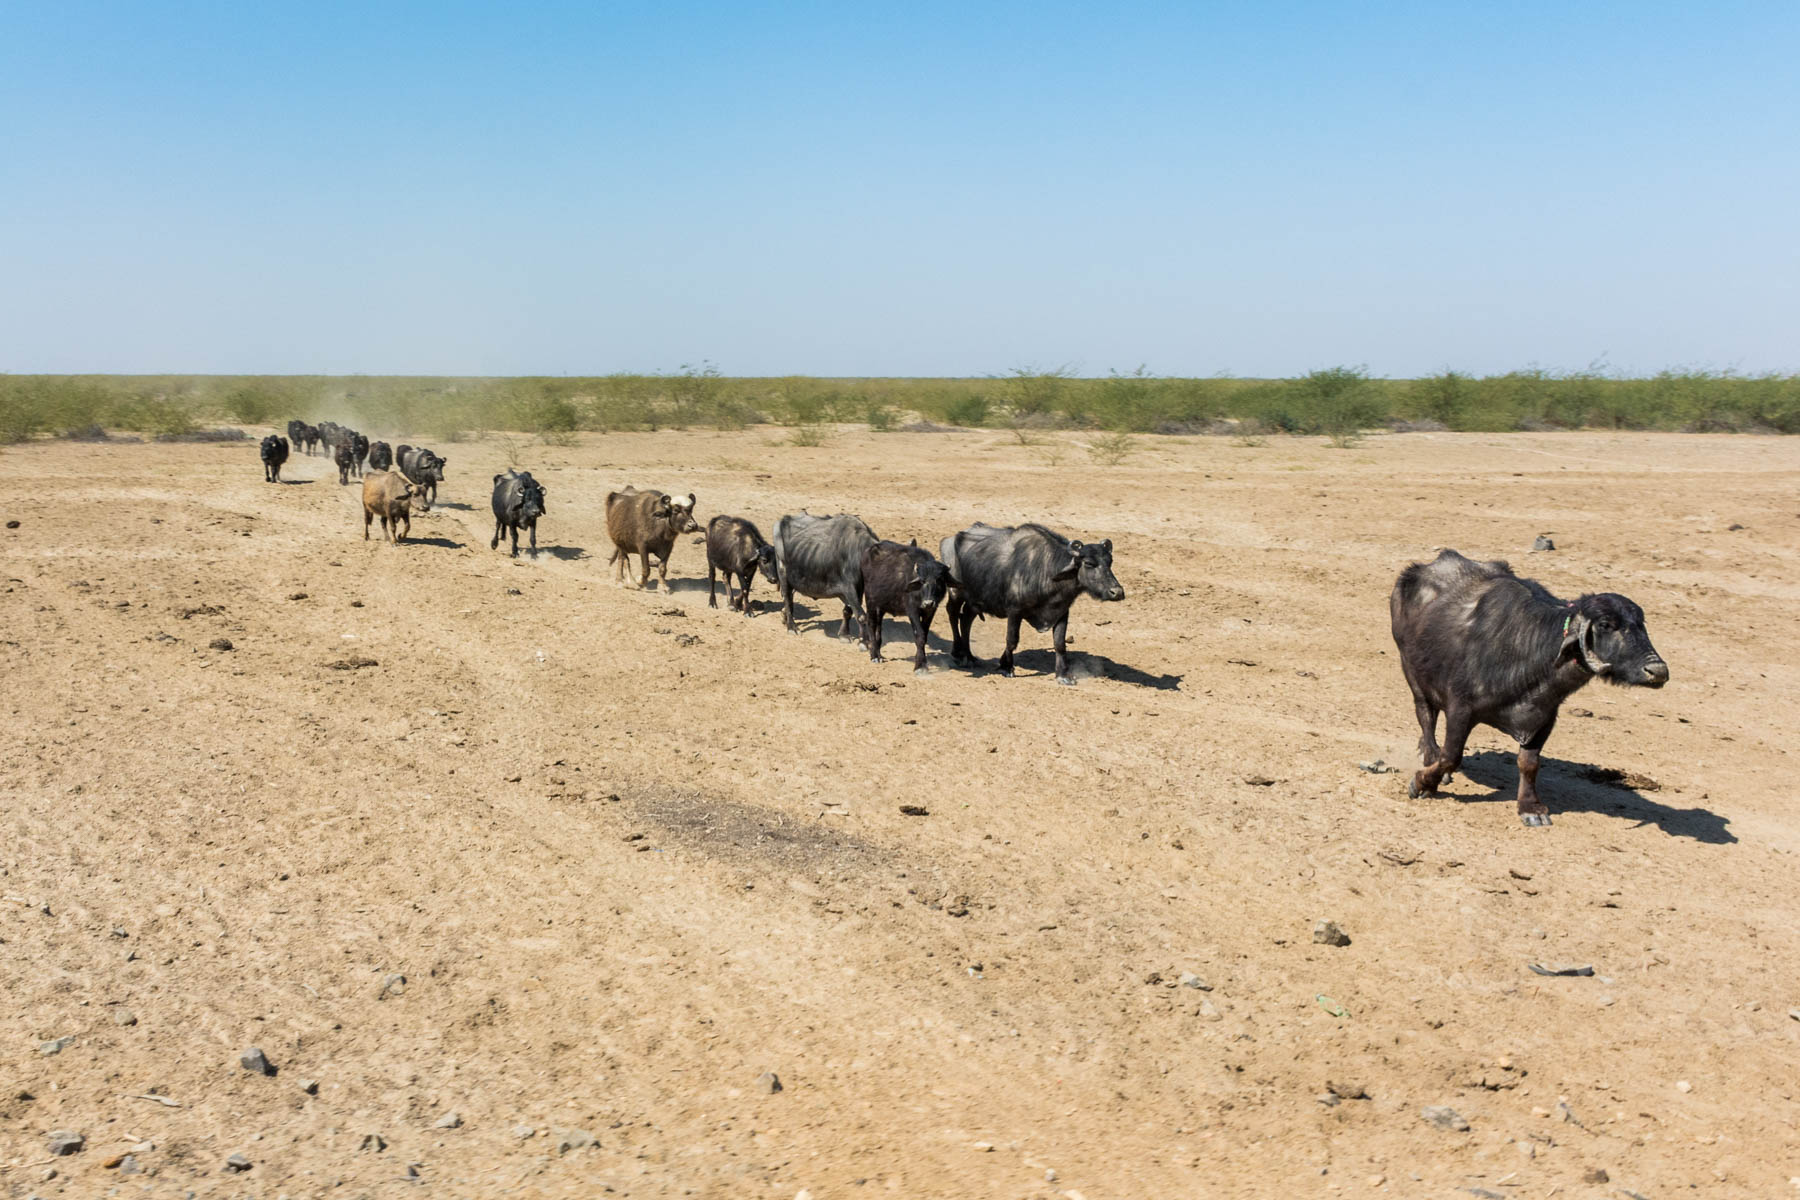 Textiles and crafts of Kutch, Gujarat, India - Buffalo walking through Kutch desert in India - Lost With Purpose